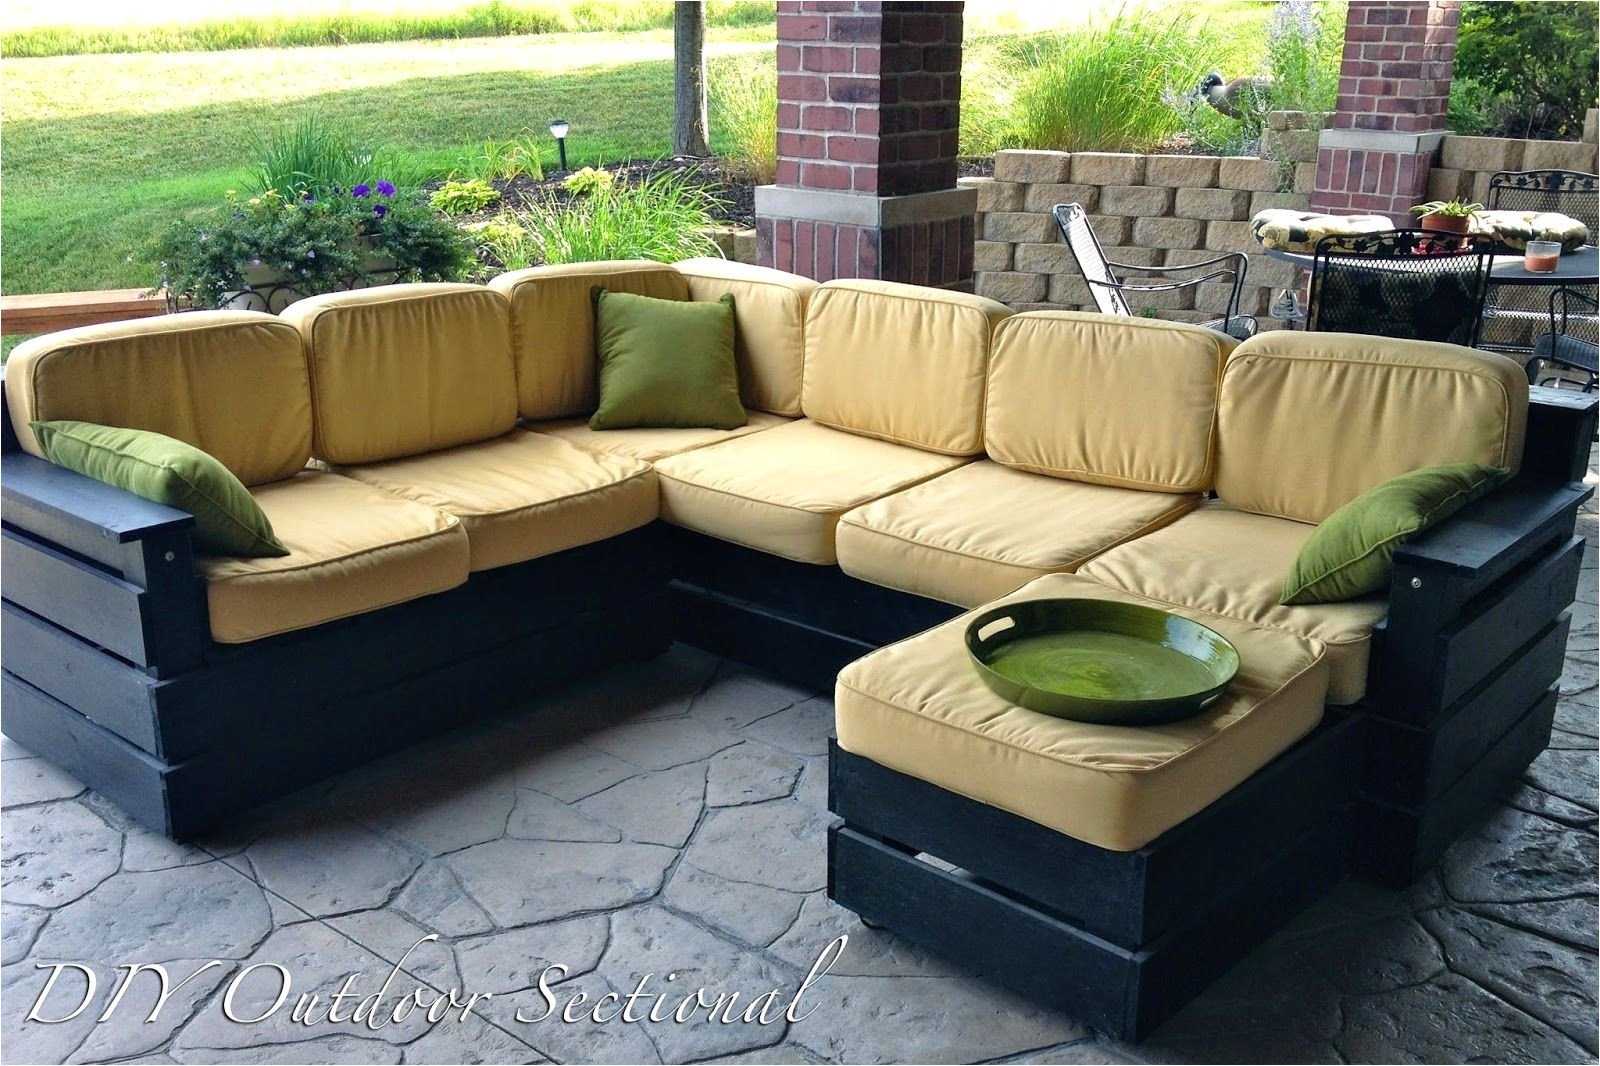 diy outdoor sectional build it yourself out of regular wood from a home improvement store